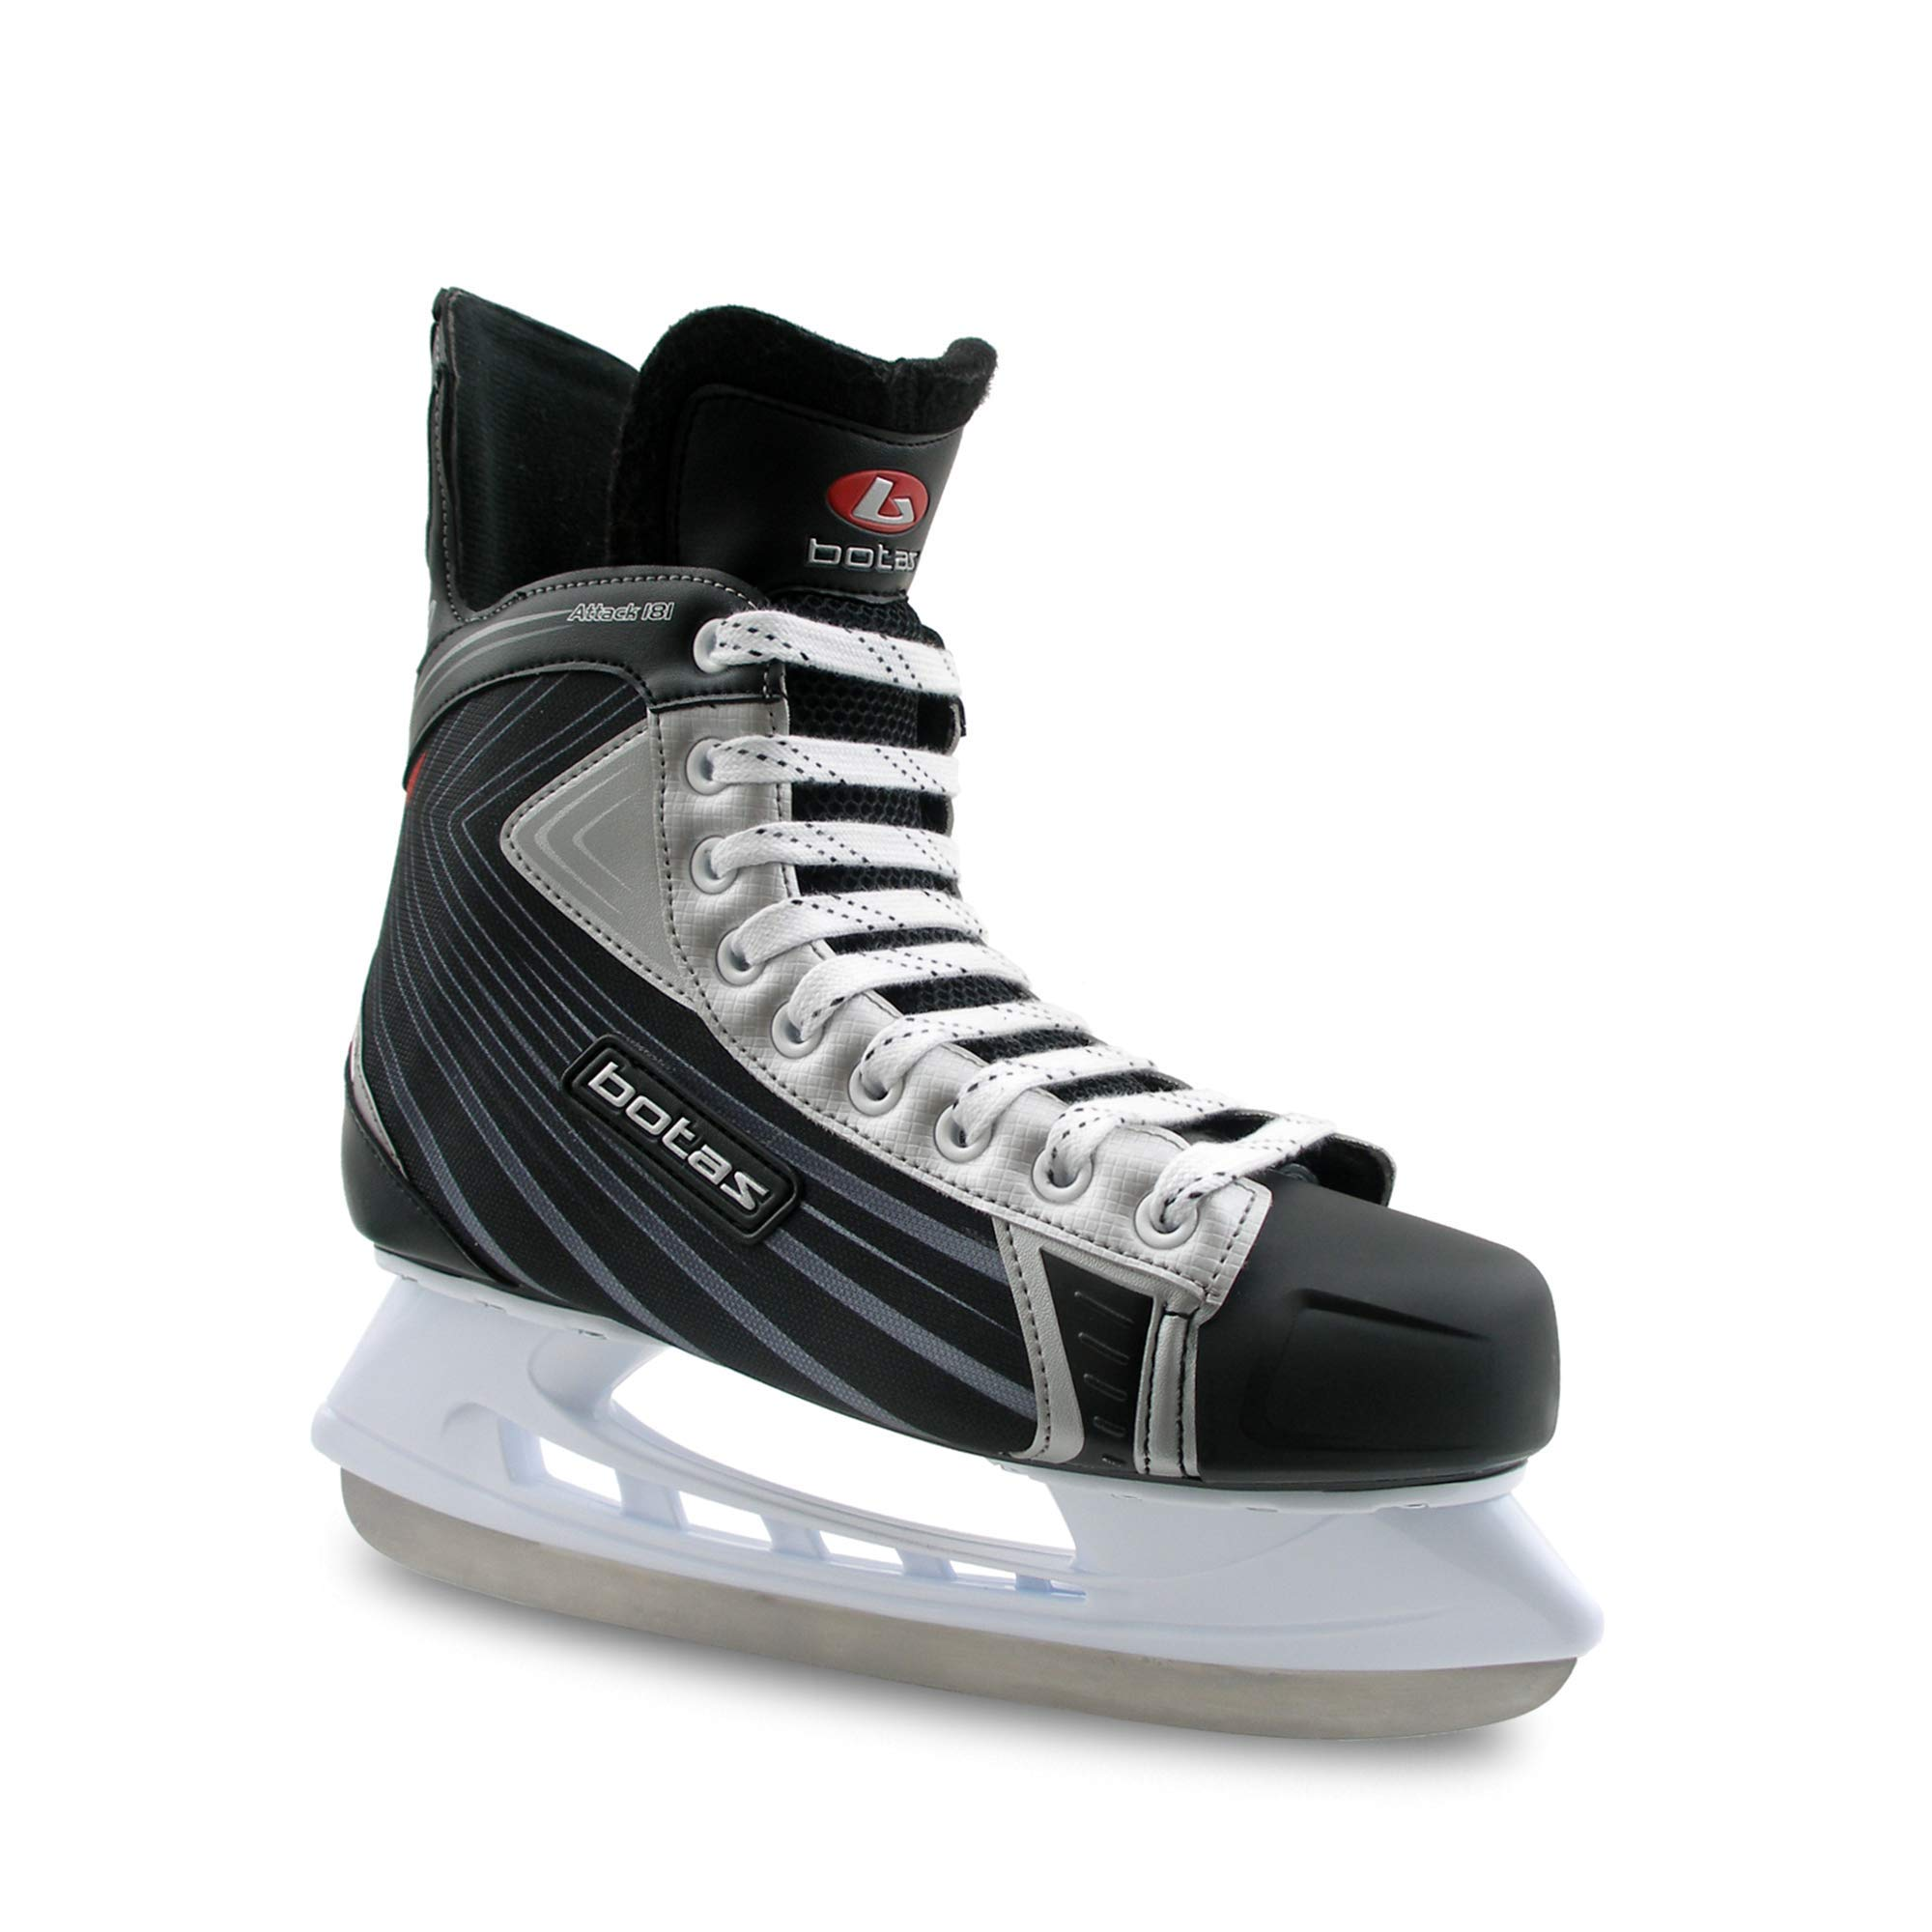 Botas - Attack 181 - Men's Ice Hockey Skates | Made in Europe (Czech Republic) | Color: Black with Silver, Adult 4